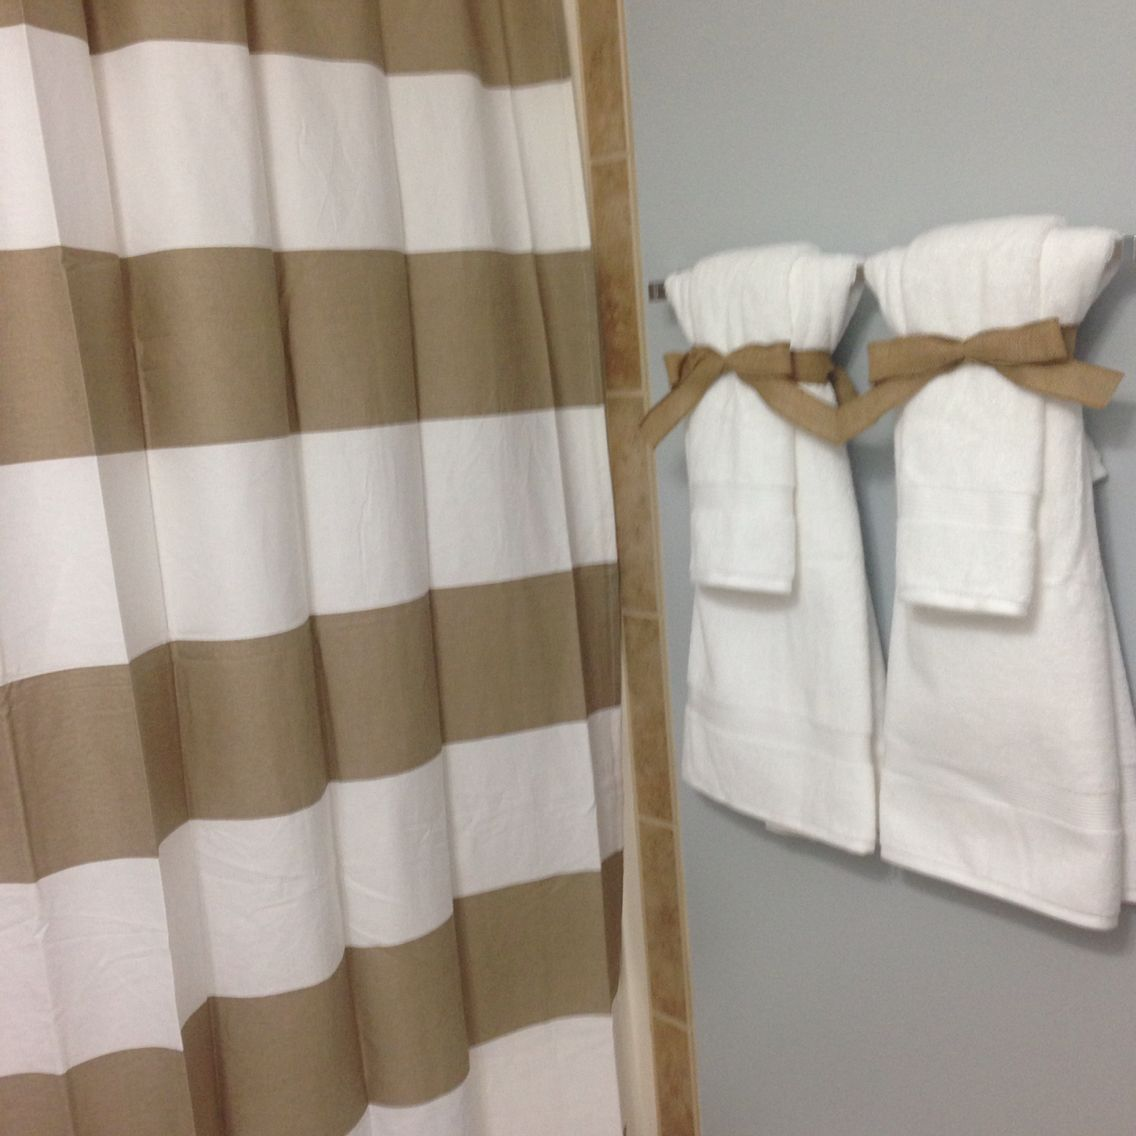 Bathroom staging to sell your home neutral colors crisp for How to tie towels in bathroom